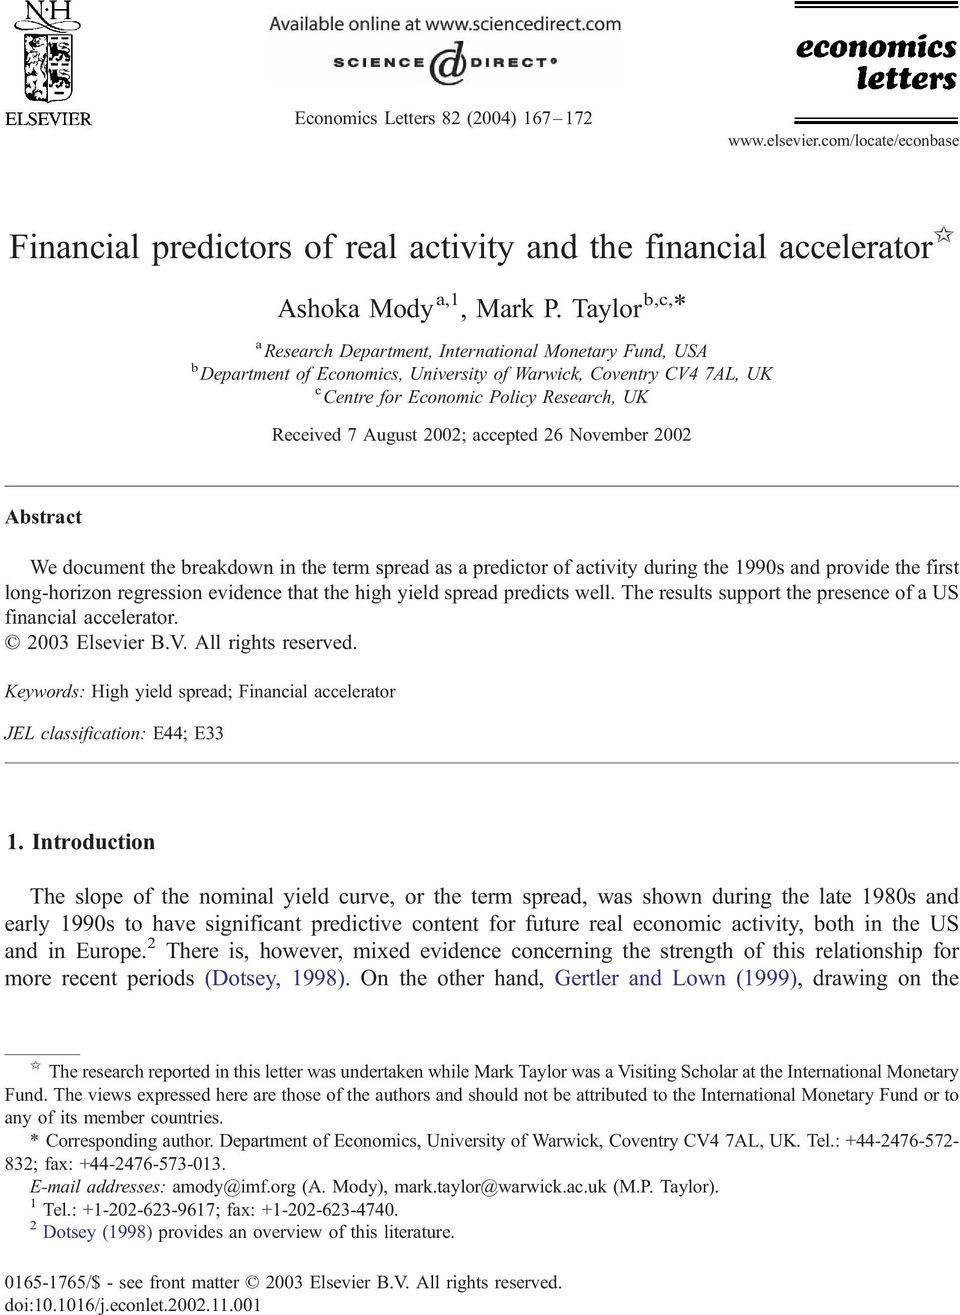 August 2002; accepted 26 November 2002 Abstract We document the breakdown in the term spread as a predictor of activity during the 1990s and provide the first long-horizon regression evidence that